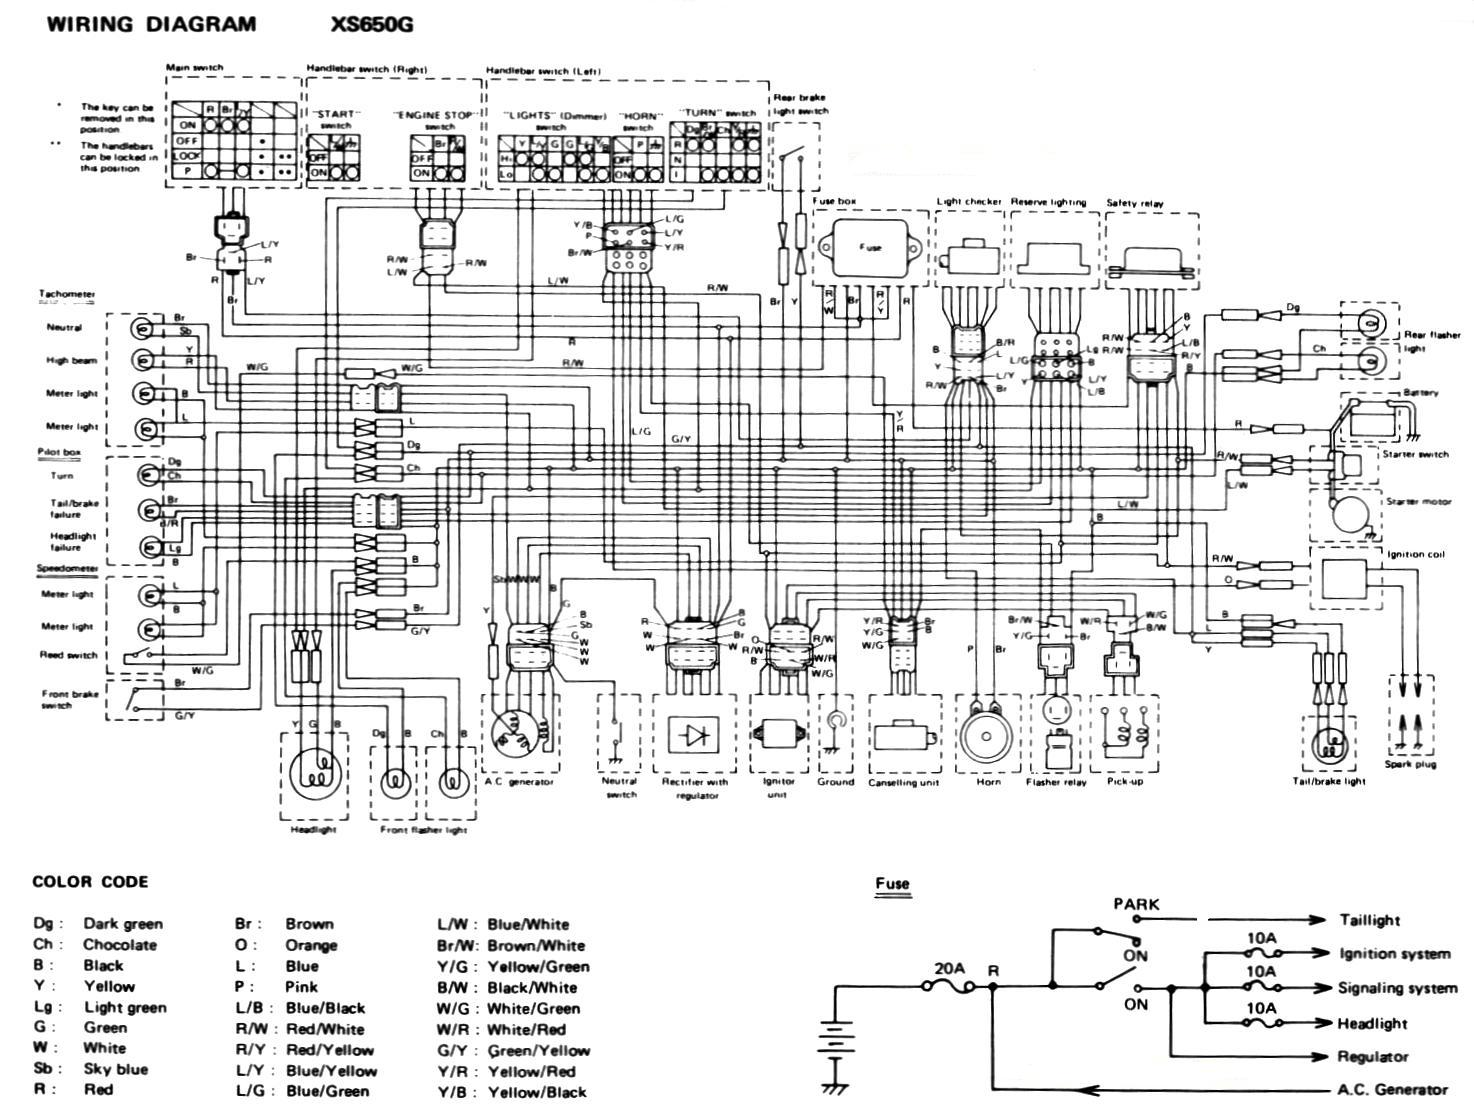 Yamaha Xt125 Wiring Diagram And Ebooks Xt 125 1983 Xs 650 Simple Schema Rh 6 Aspire Atlantis De 1982 Xt125x